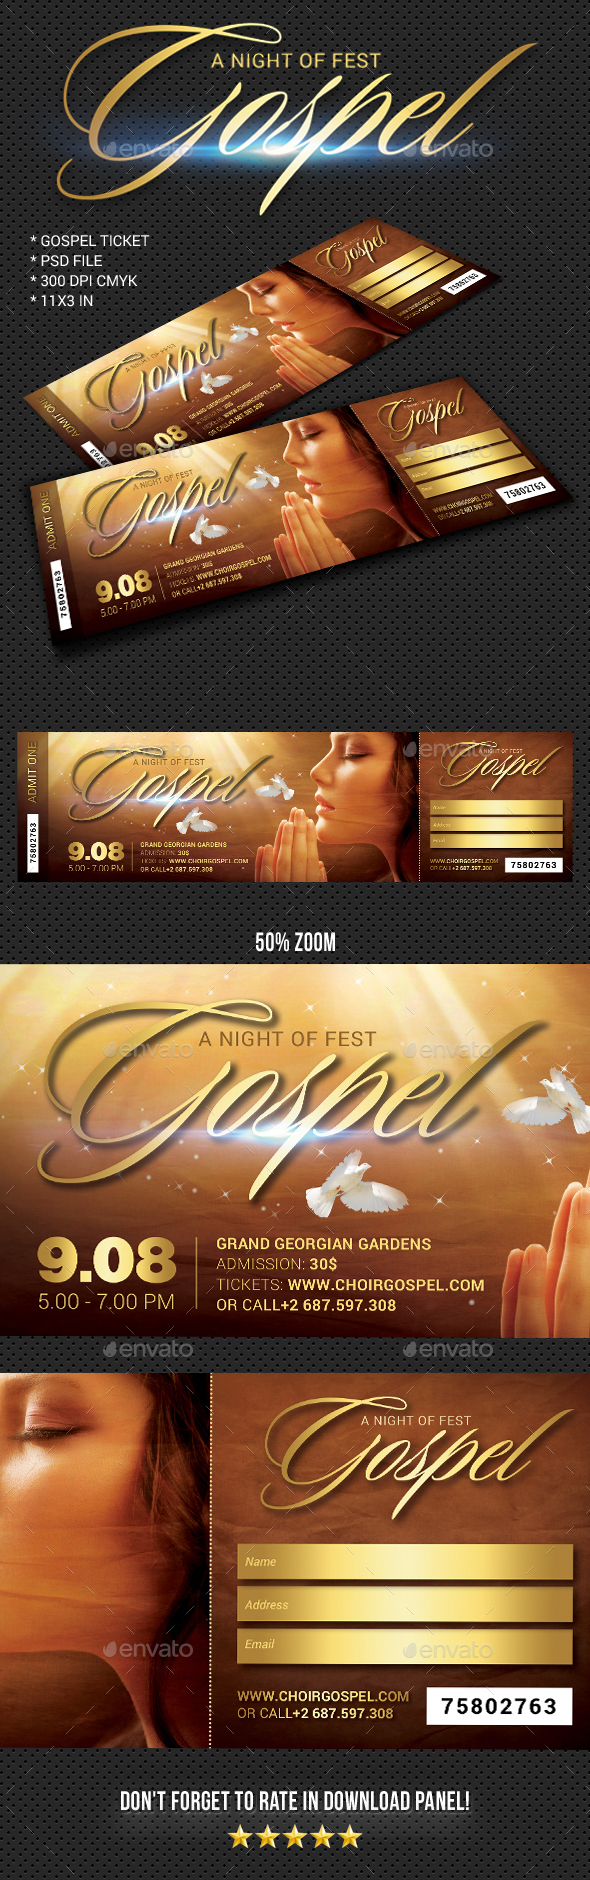 Gospel Fest Event Ticket - Cards & Invites Print Templates